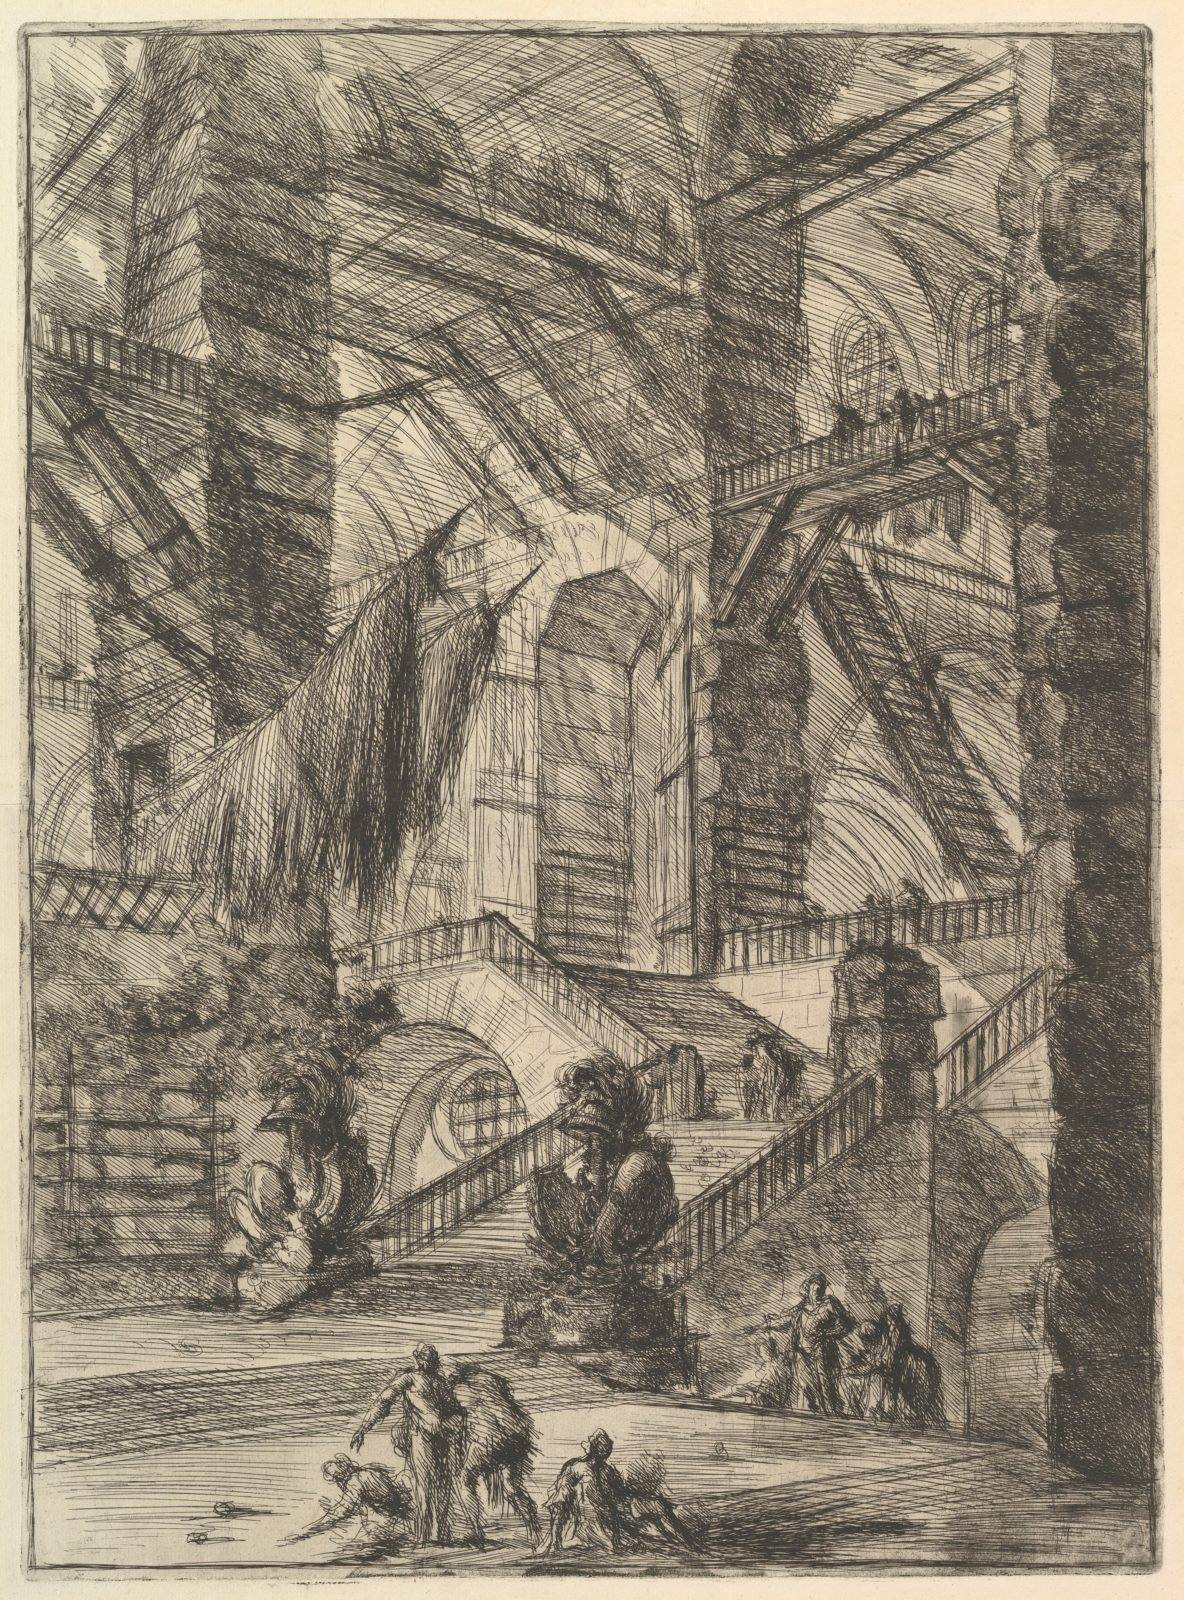 The Staircase with Trophies, from Carceri d'invenzione (Imaginary Prisons)